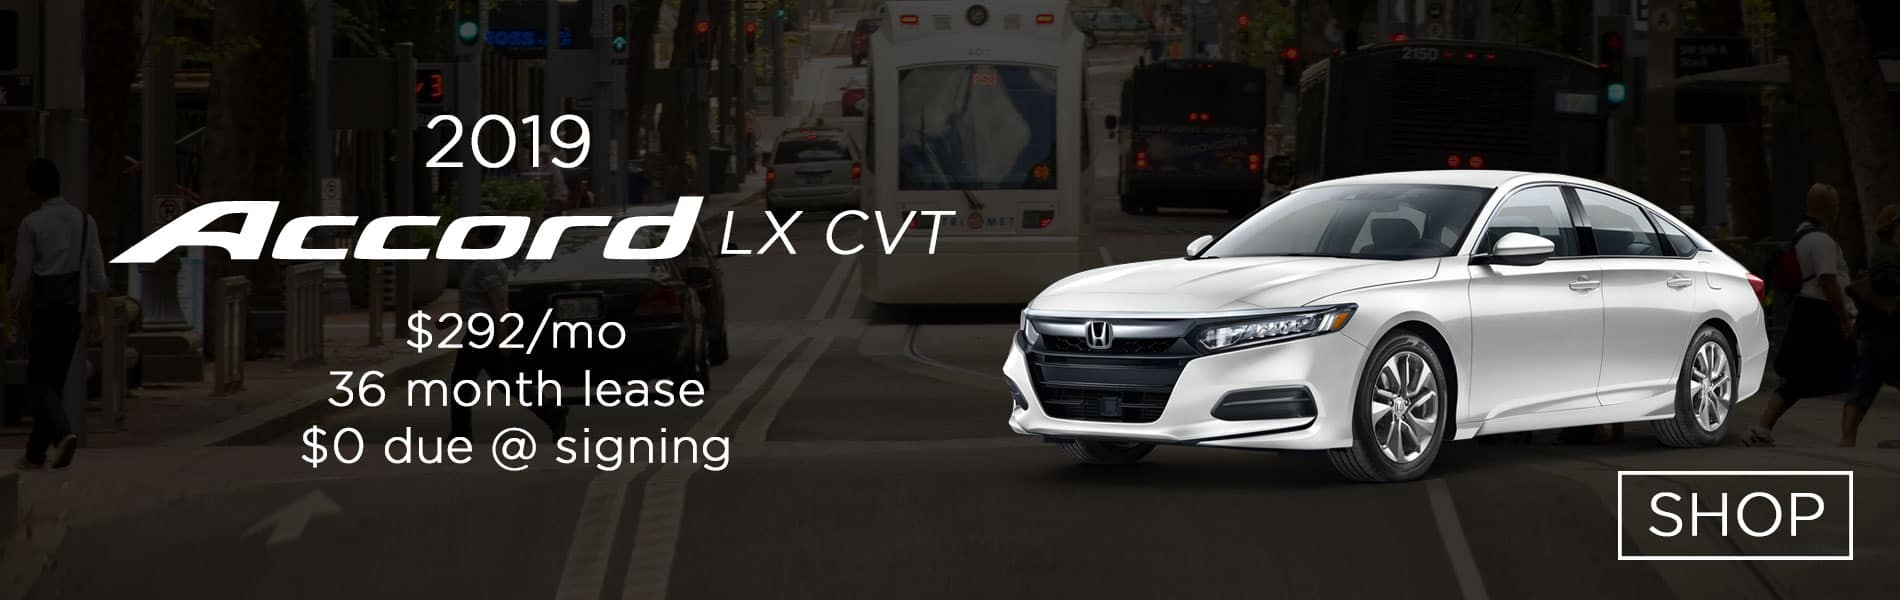 Lease a 2019 Honda Accord LX CVT for $295 per month lease with $0 due at signing